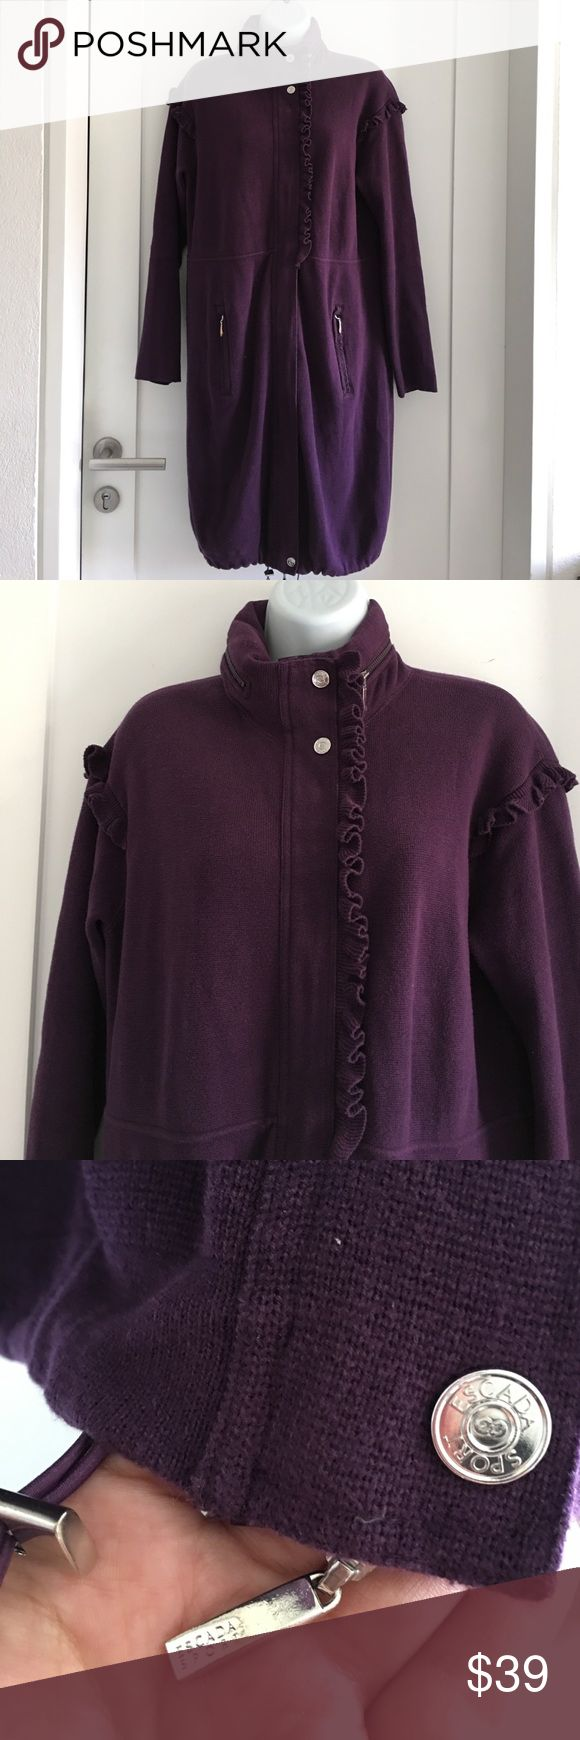 """Escada Sport Long Zip Up Hoodie Knit Sweater sz S Preowned authentic Escada Sport Long Zip Up Hoodie Knit Sweater sz S. Hoodie is waterproof. 100% cotton. Collar to hem is 37.5"""" inches. Please look at pictures for better reference. Thank you for looking and happy shopping! Escada Tops Sweatshirts & Hoodies"""